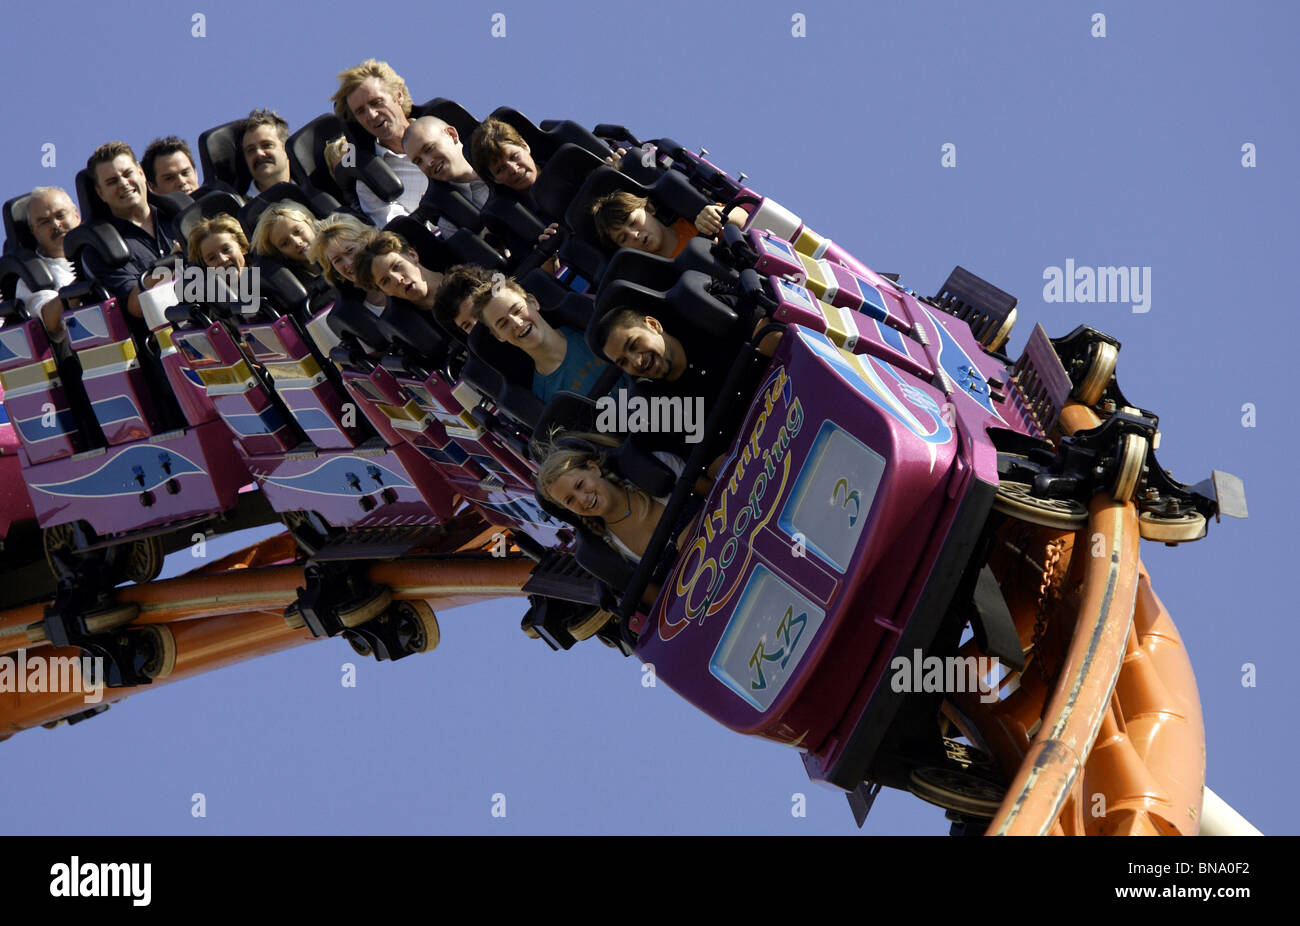 roller coaster funfair ride looping oktoberfest munich germany stock photo royalty free image. Black Bedroom Furniture Sets. Home Design Ideas